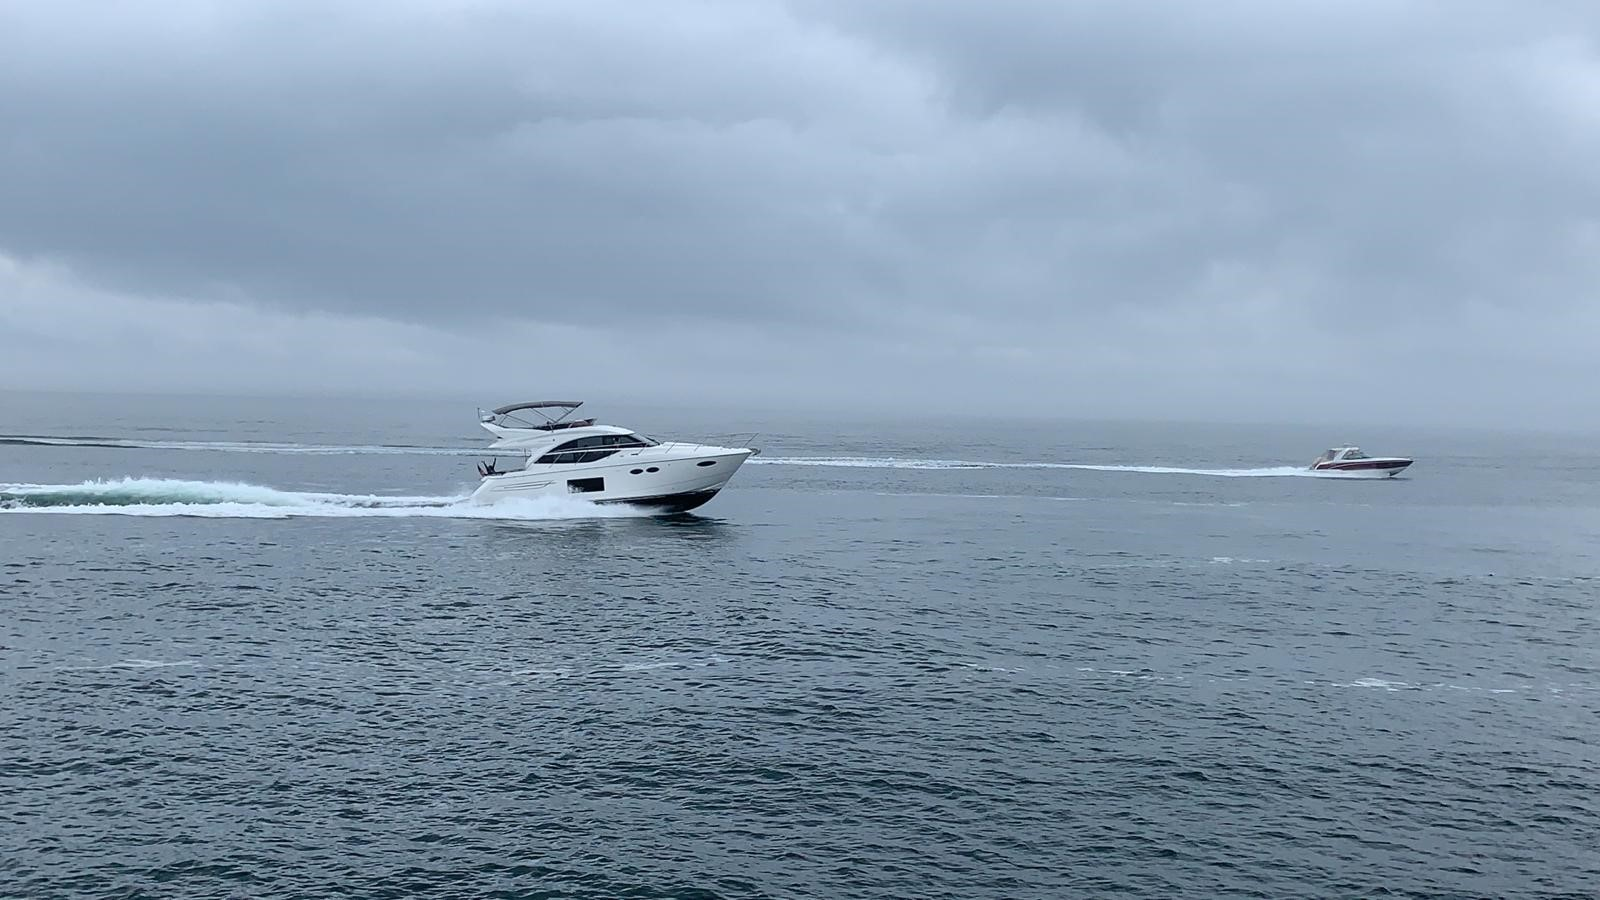 Princess Yachts running together in open water